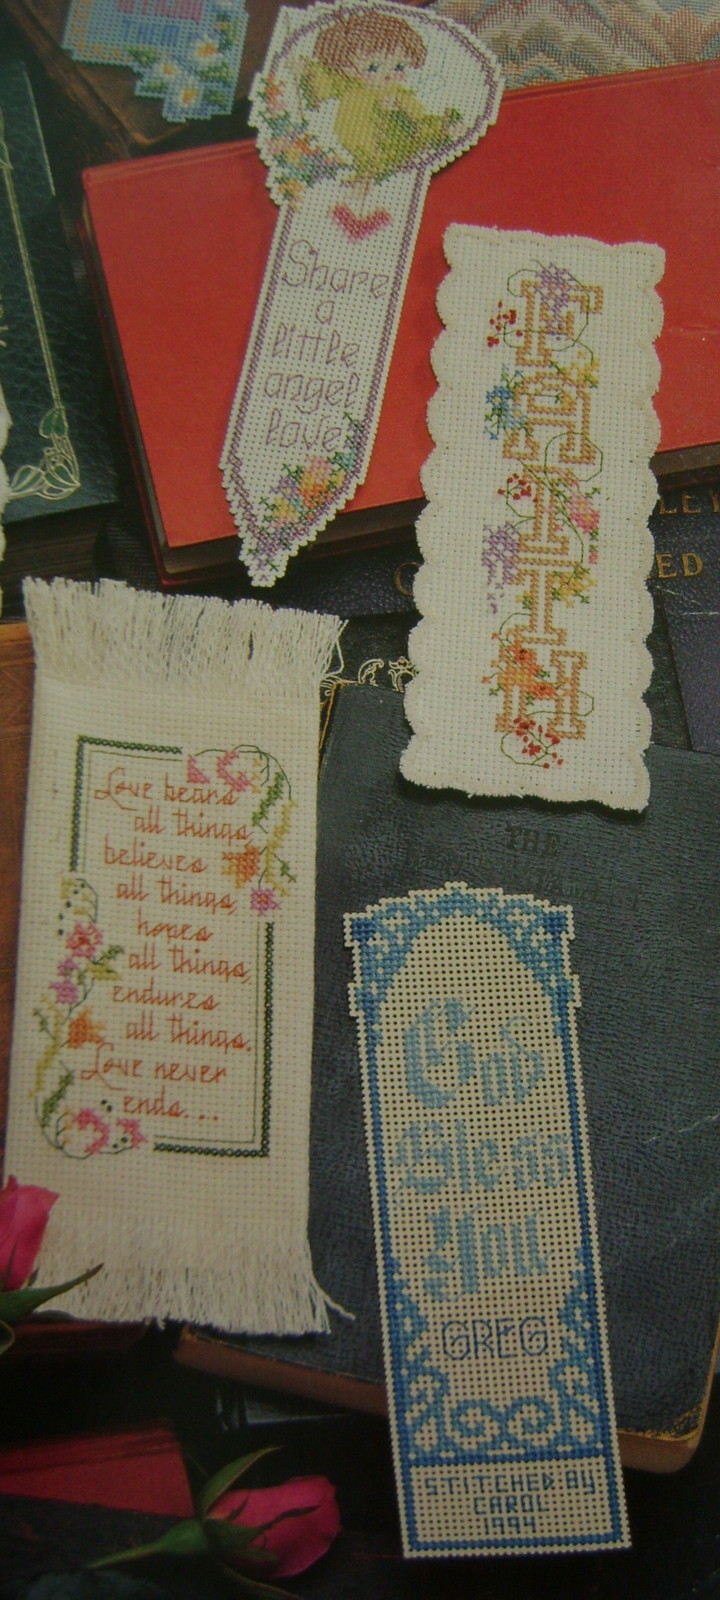 Pattern Kit Bookmarks - 2 Books Bookmarks & Samplers, 6 Packages Aida Cloth image 2